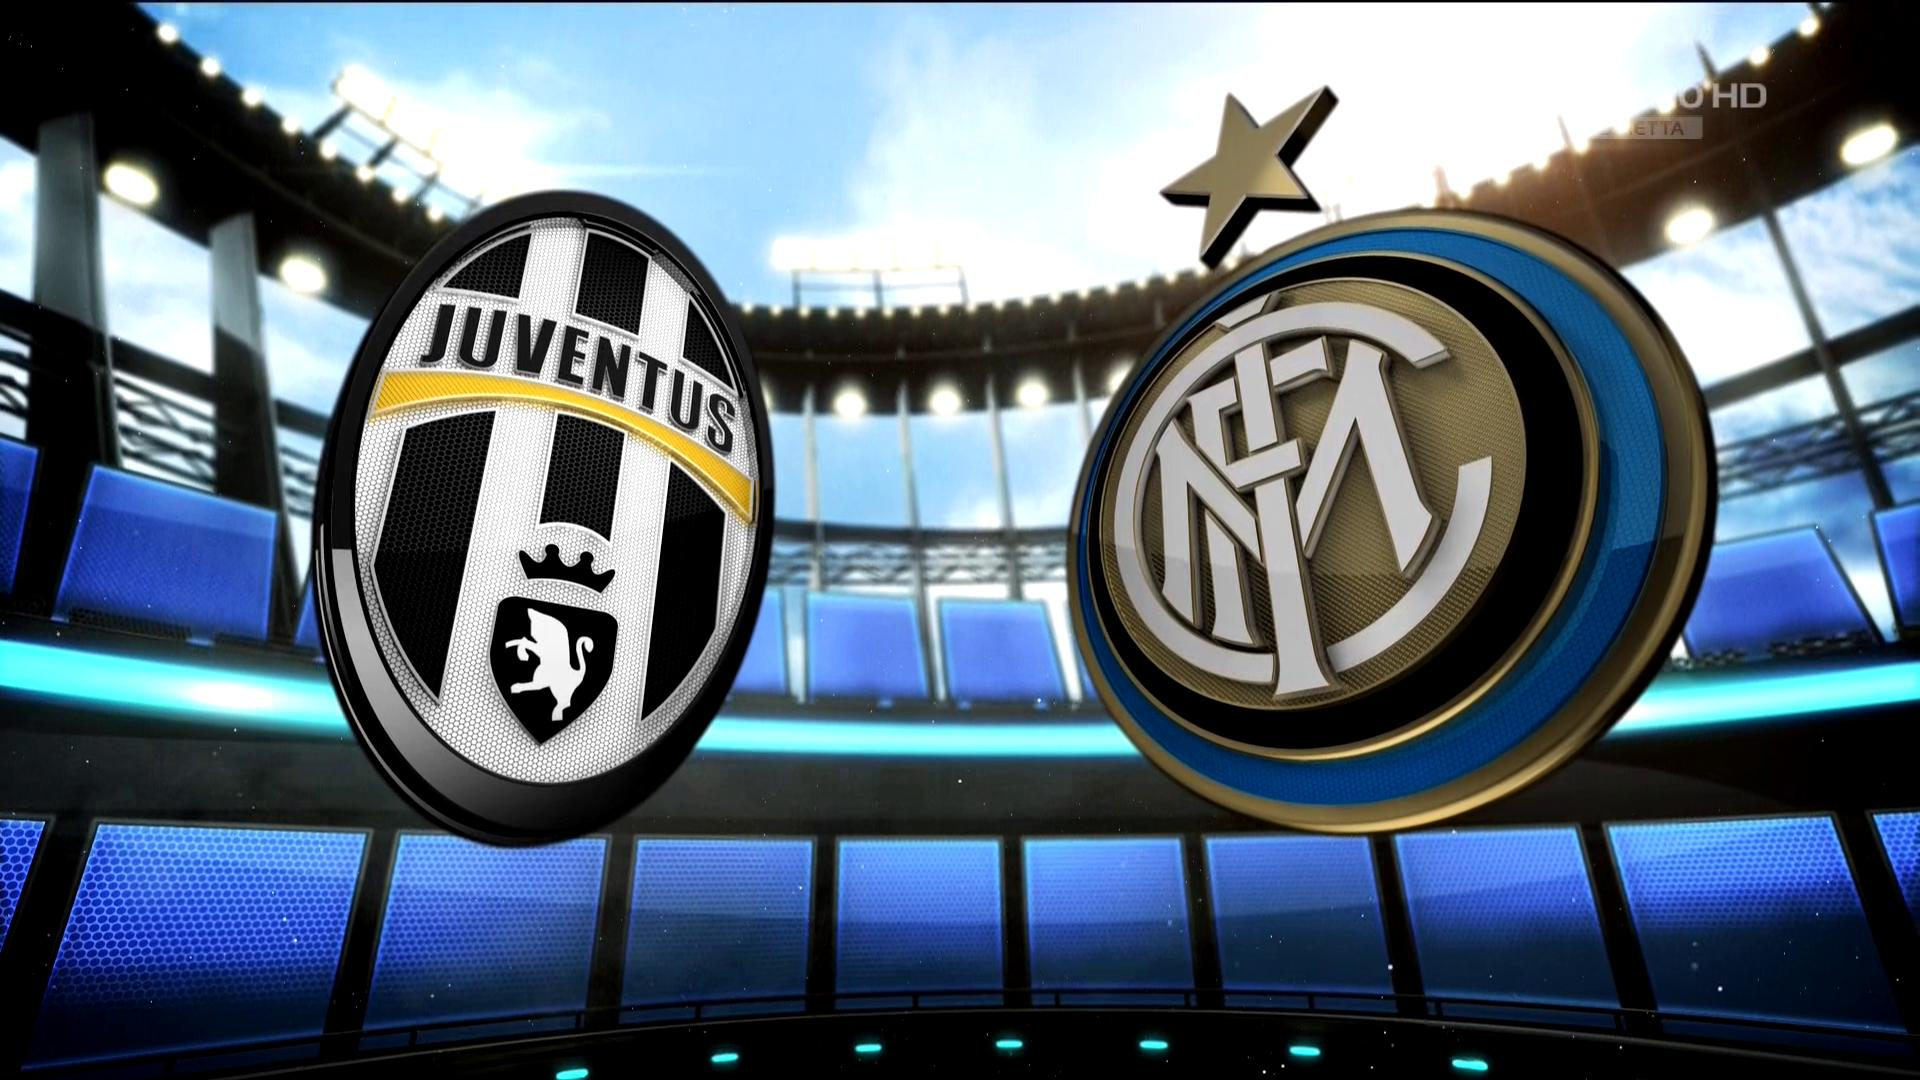 juventus-inter - photo #40